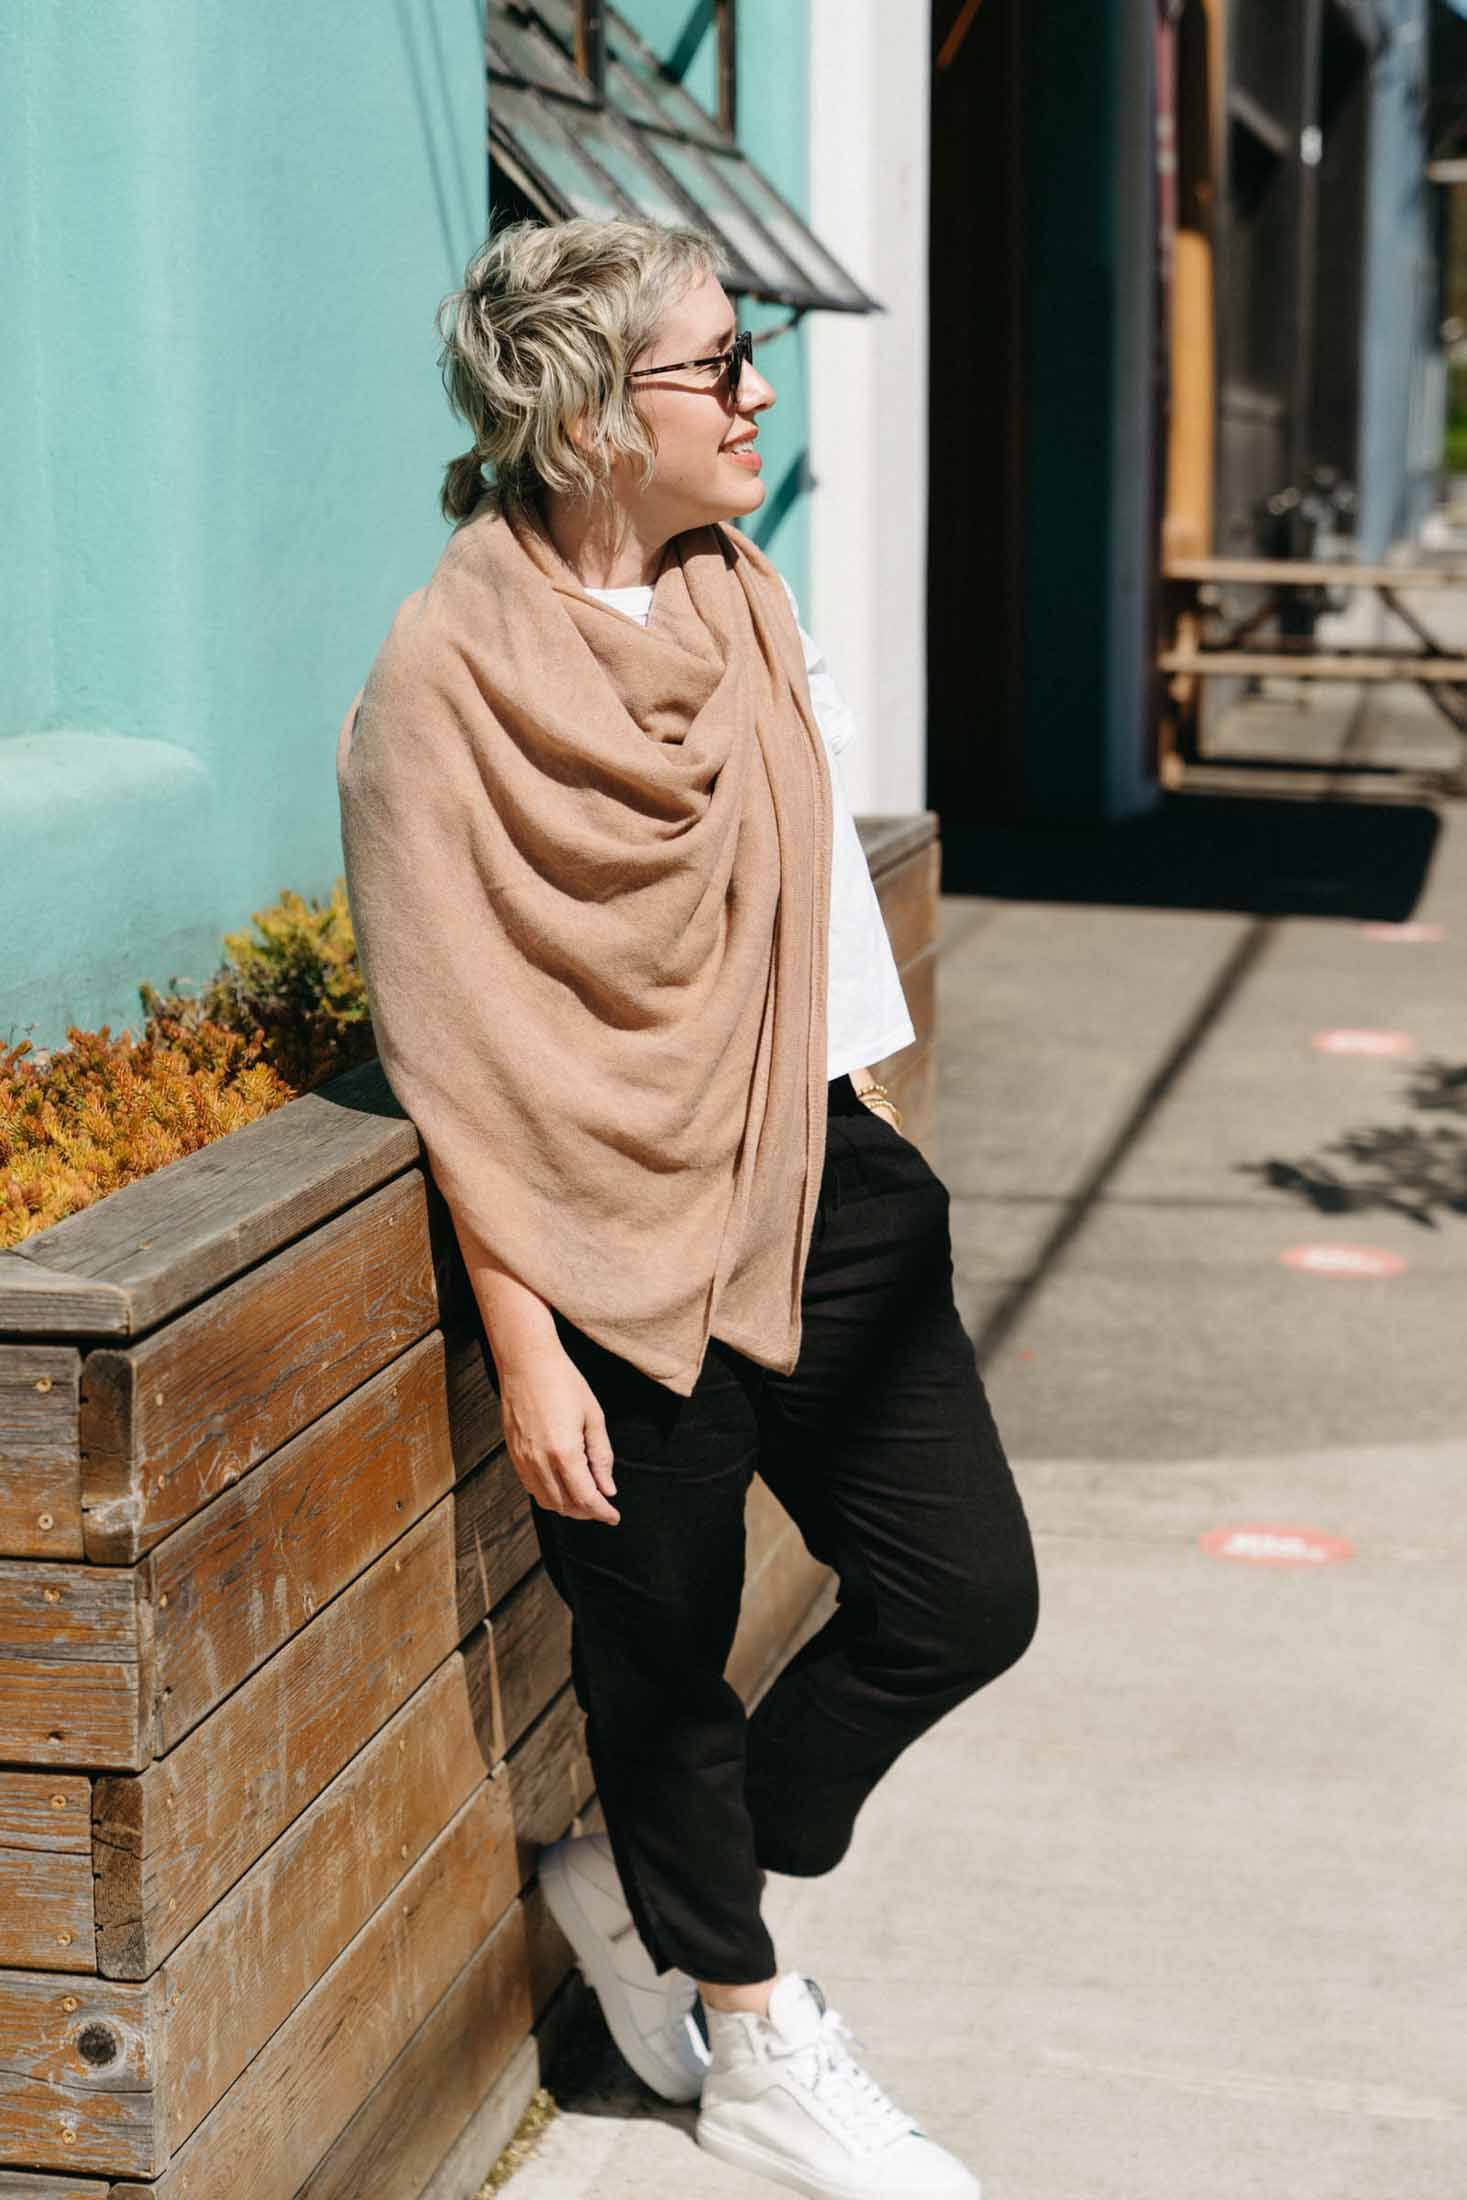 Light, airy & soft, Halogen's cashmere scarf is the perfect wrap for summer & travel. We're styling it 3 ways to layer just so.